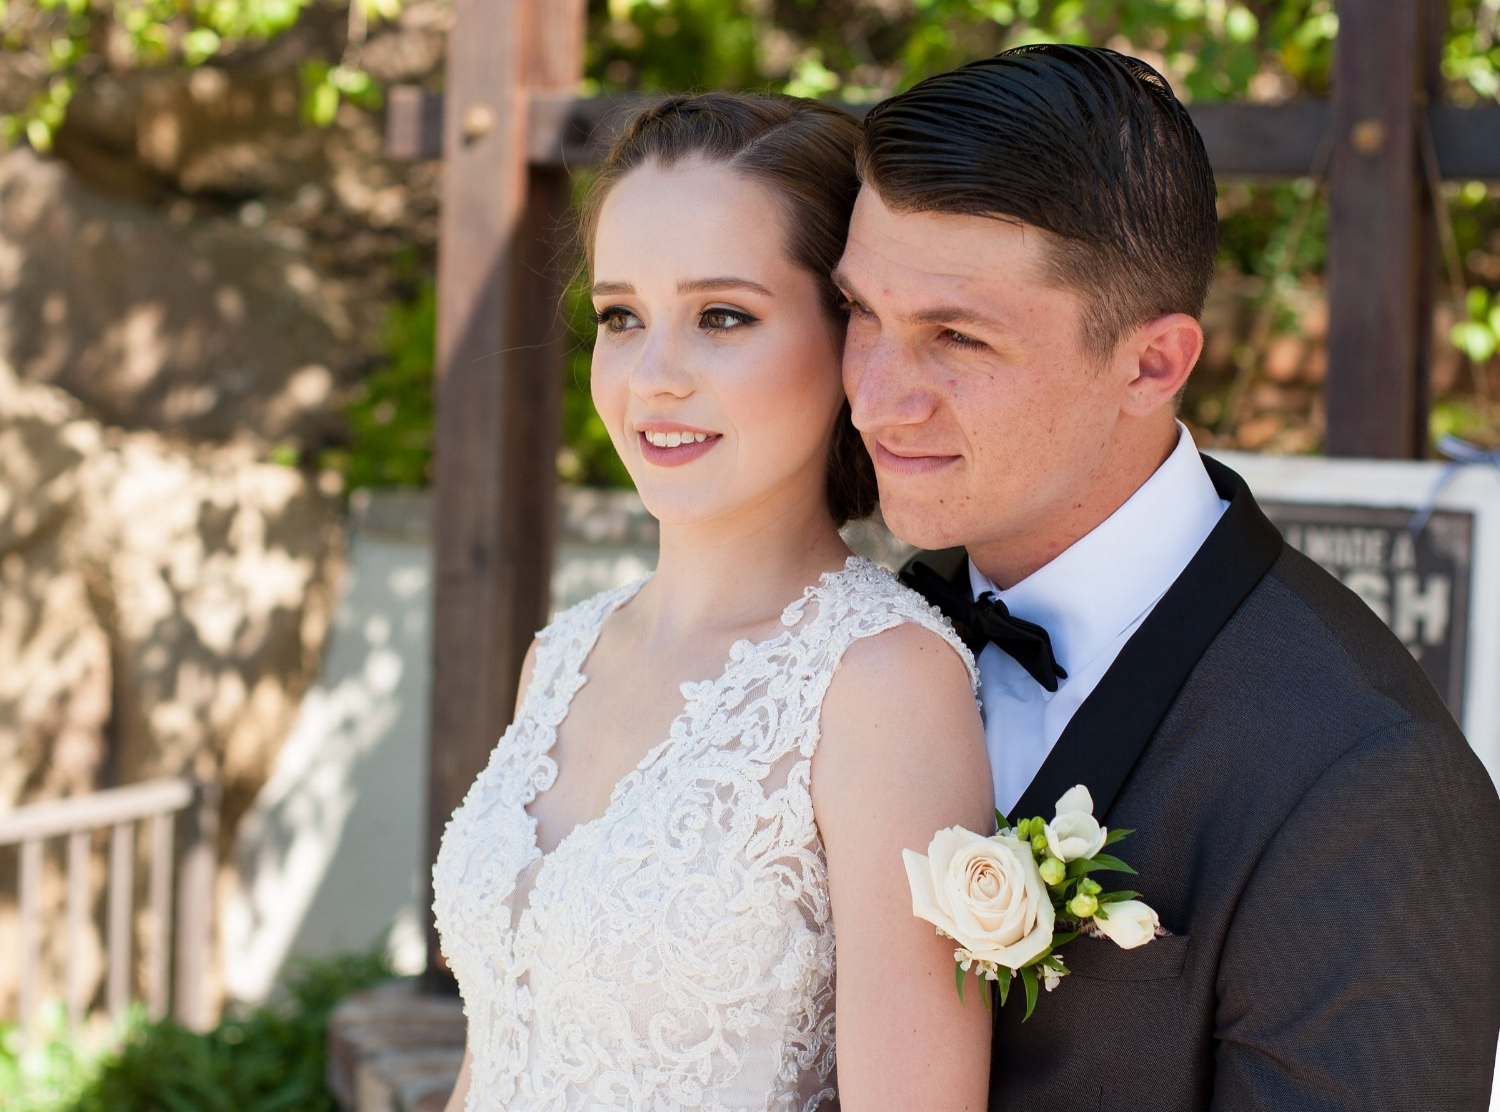 Wedding Day Photos of Young Brunette Bride with Natural Makeup and Braided Updo. Bridal Hair and Beauty by Vanity Belle in Orange County (Costa Mesa) and San Diego (La Jolla)